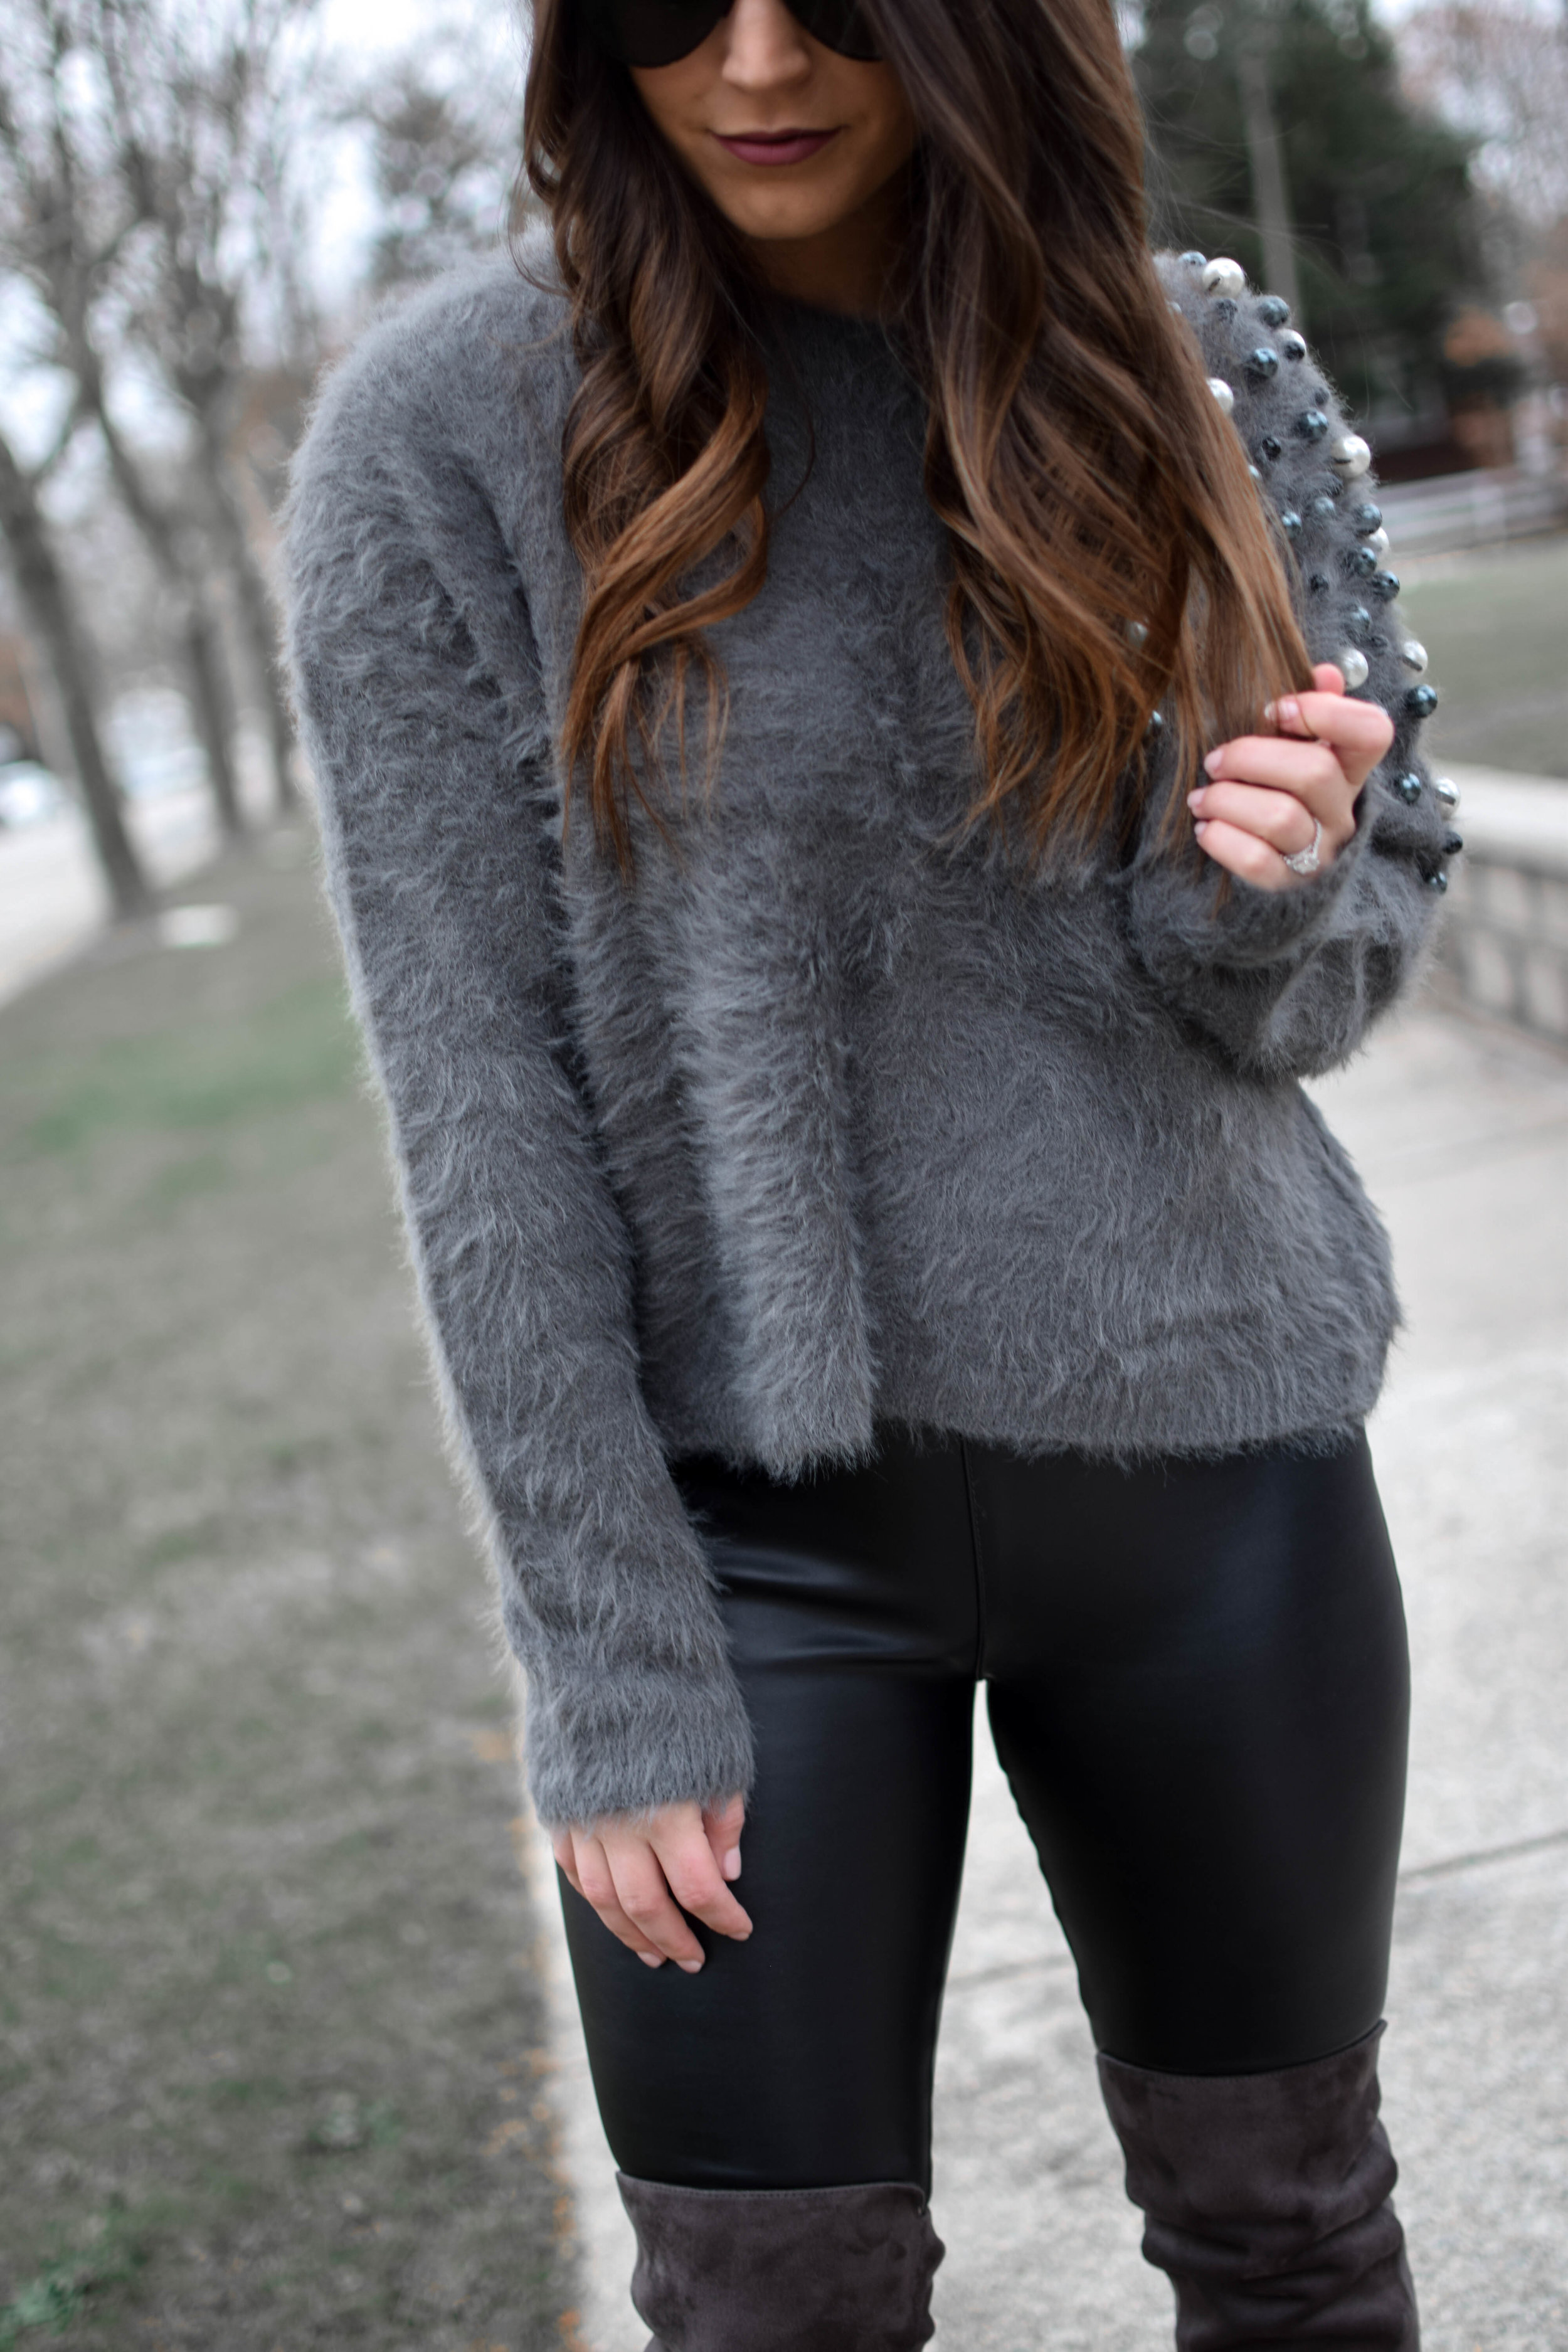 How to Style an Embellished Sweater | Pine Barren Beauty | winter outfit idea, winter outfit inspiration, winter fashion, holiday outfits idea, embellished sweater, sweater with pearls